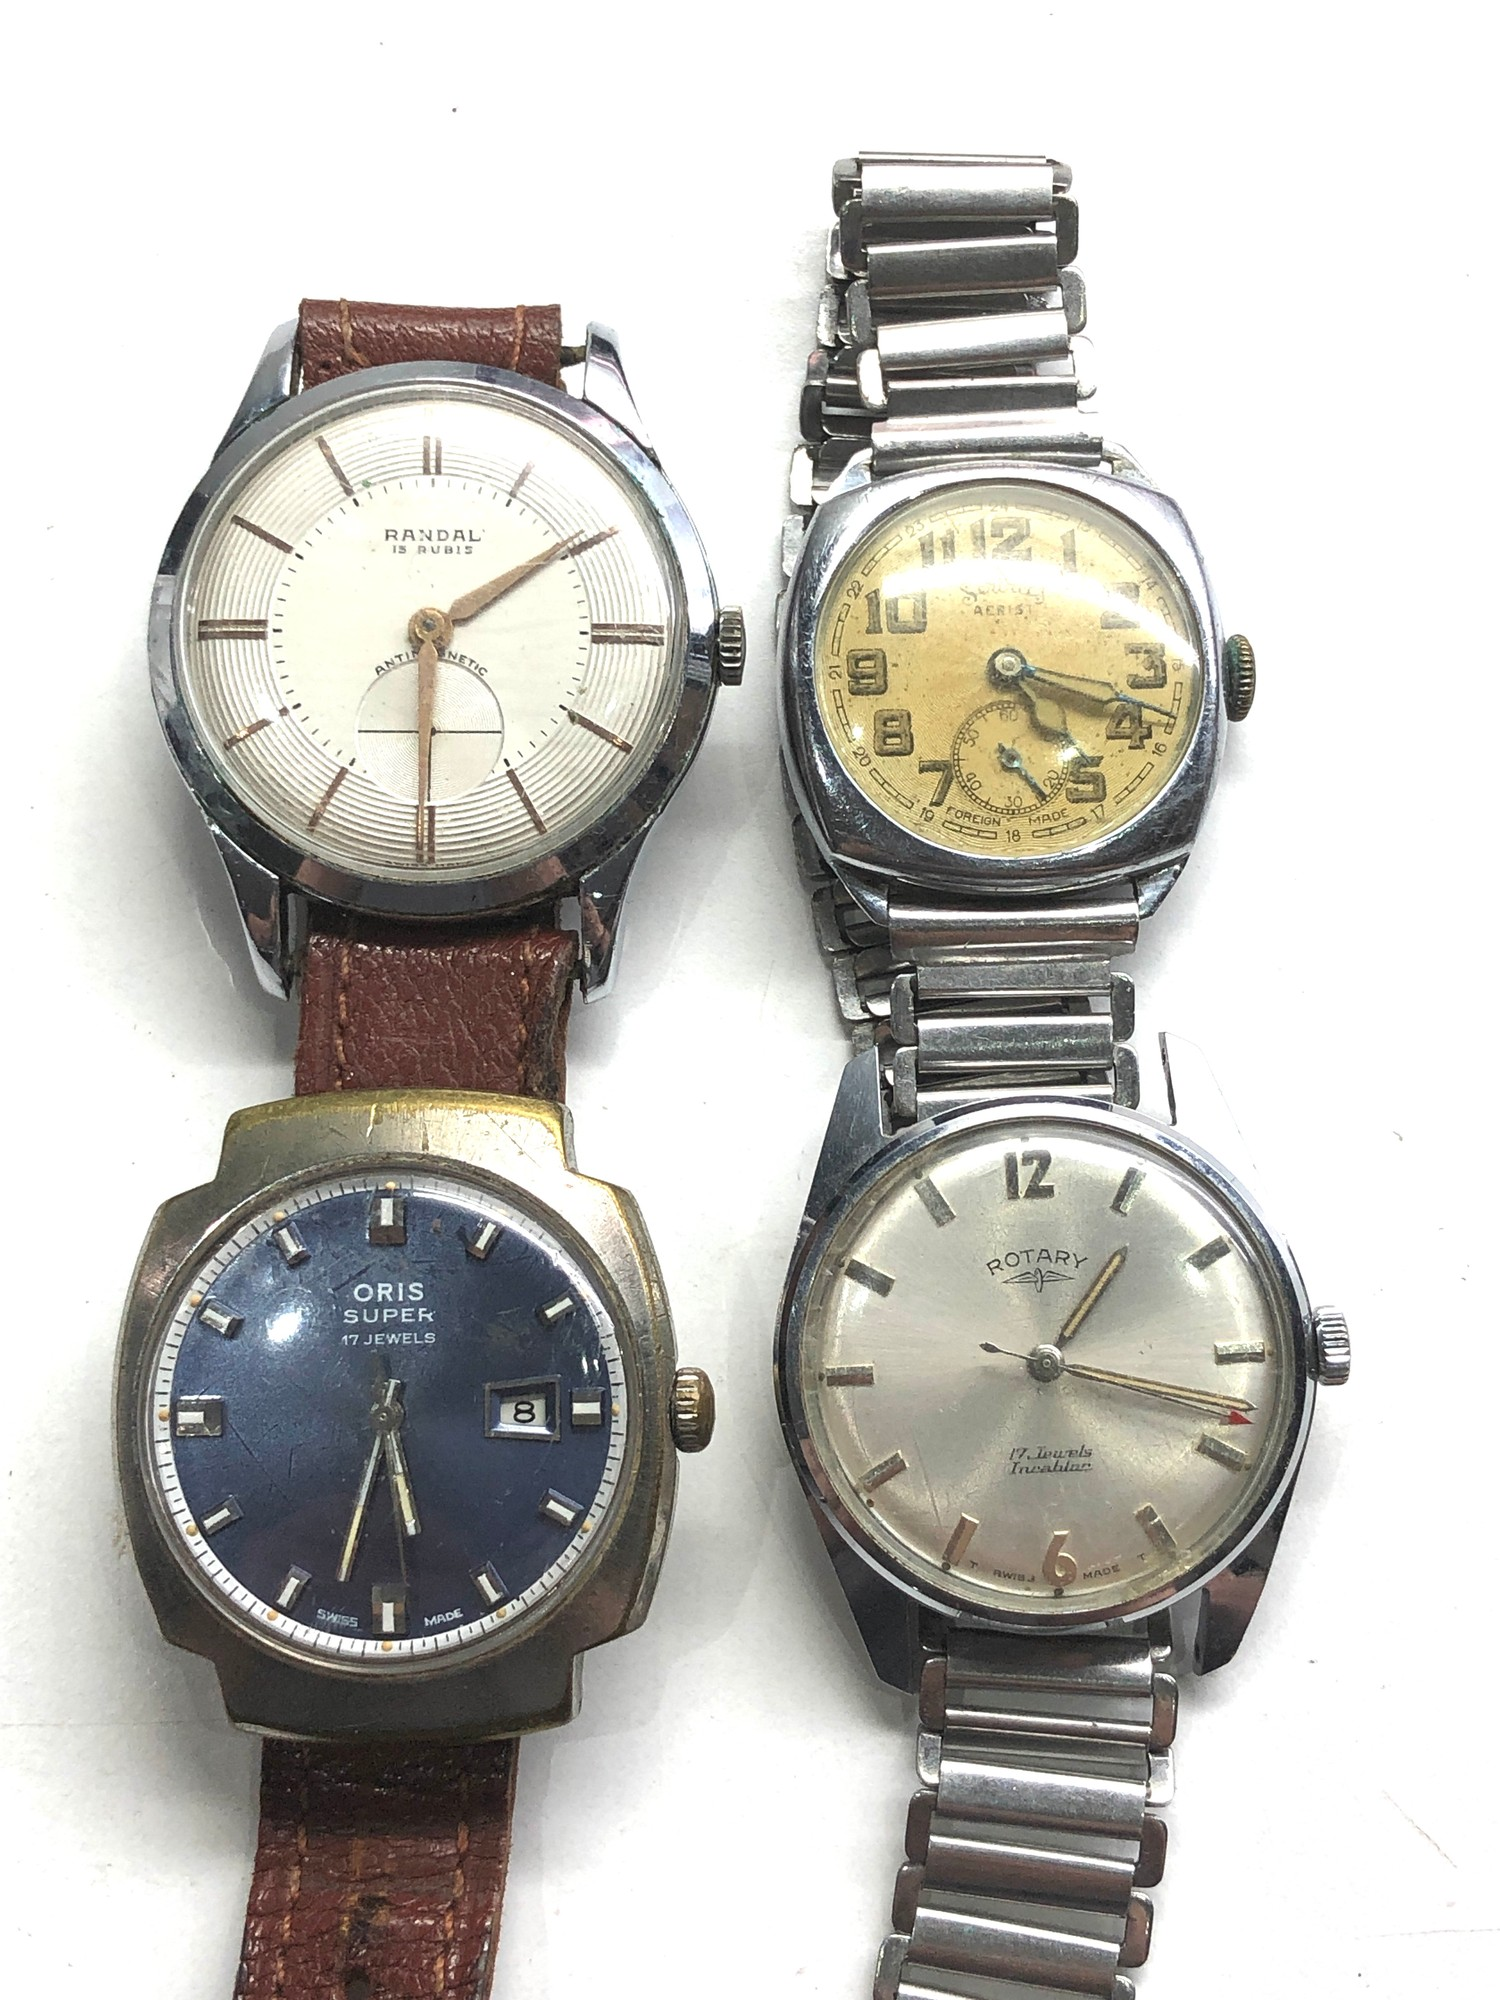 Selection of 4 vintage gents wristwatches includes rotary oris services and randal untested spares